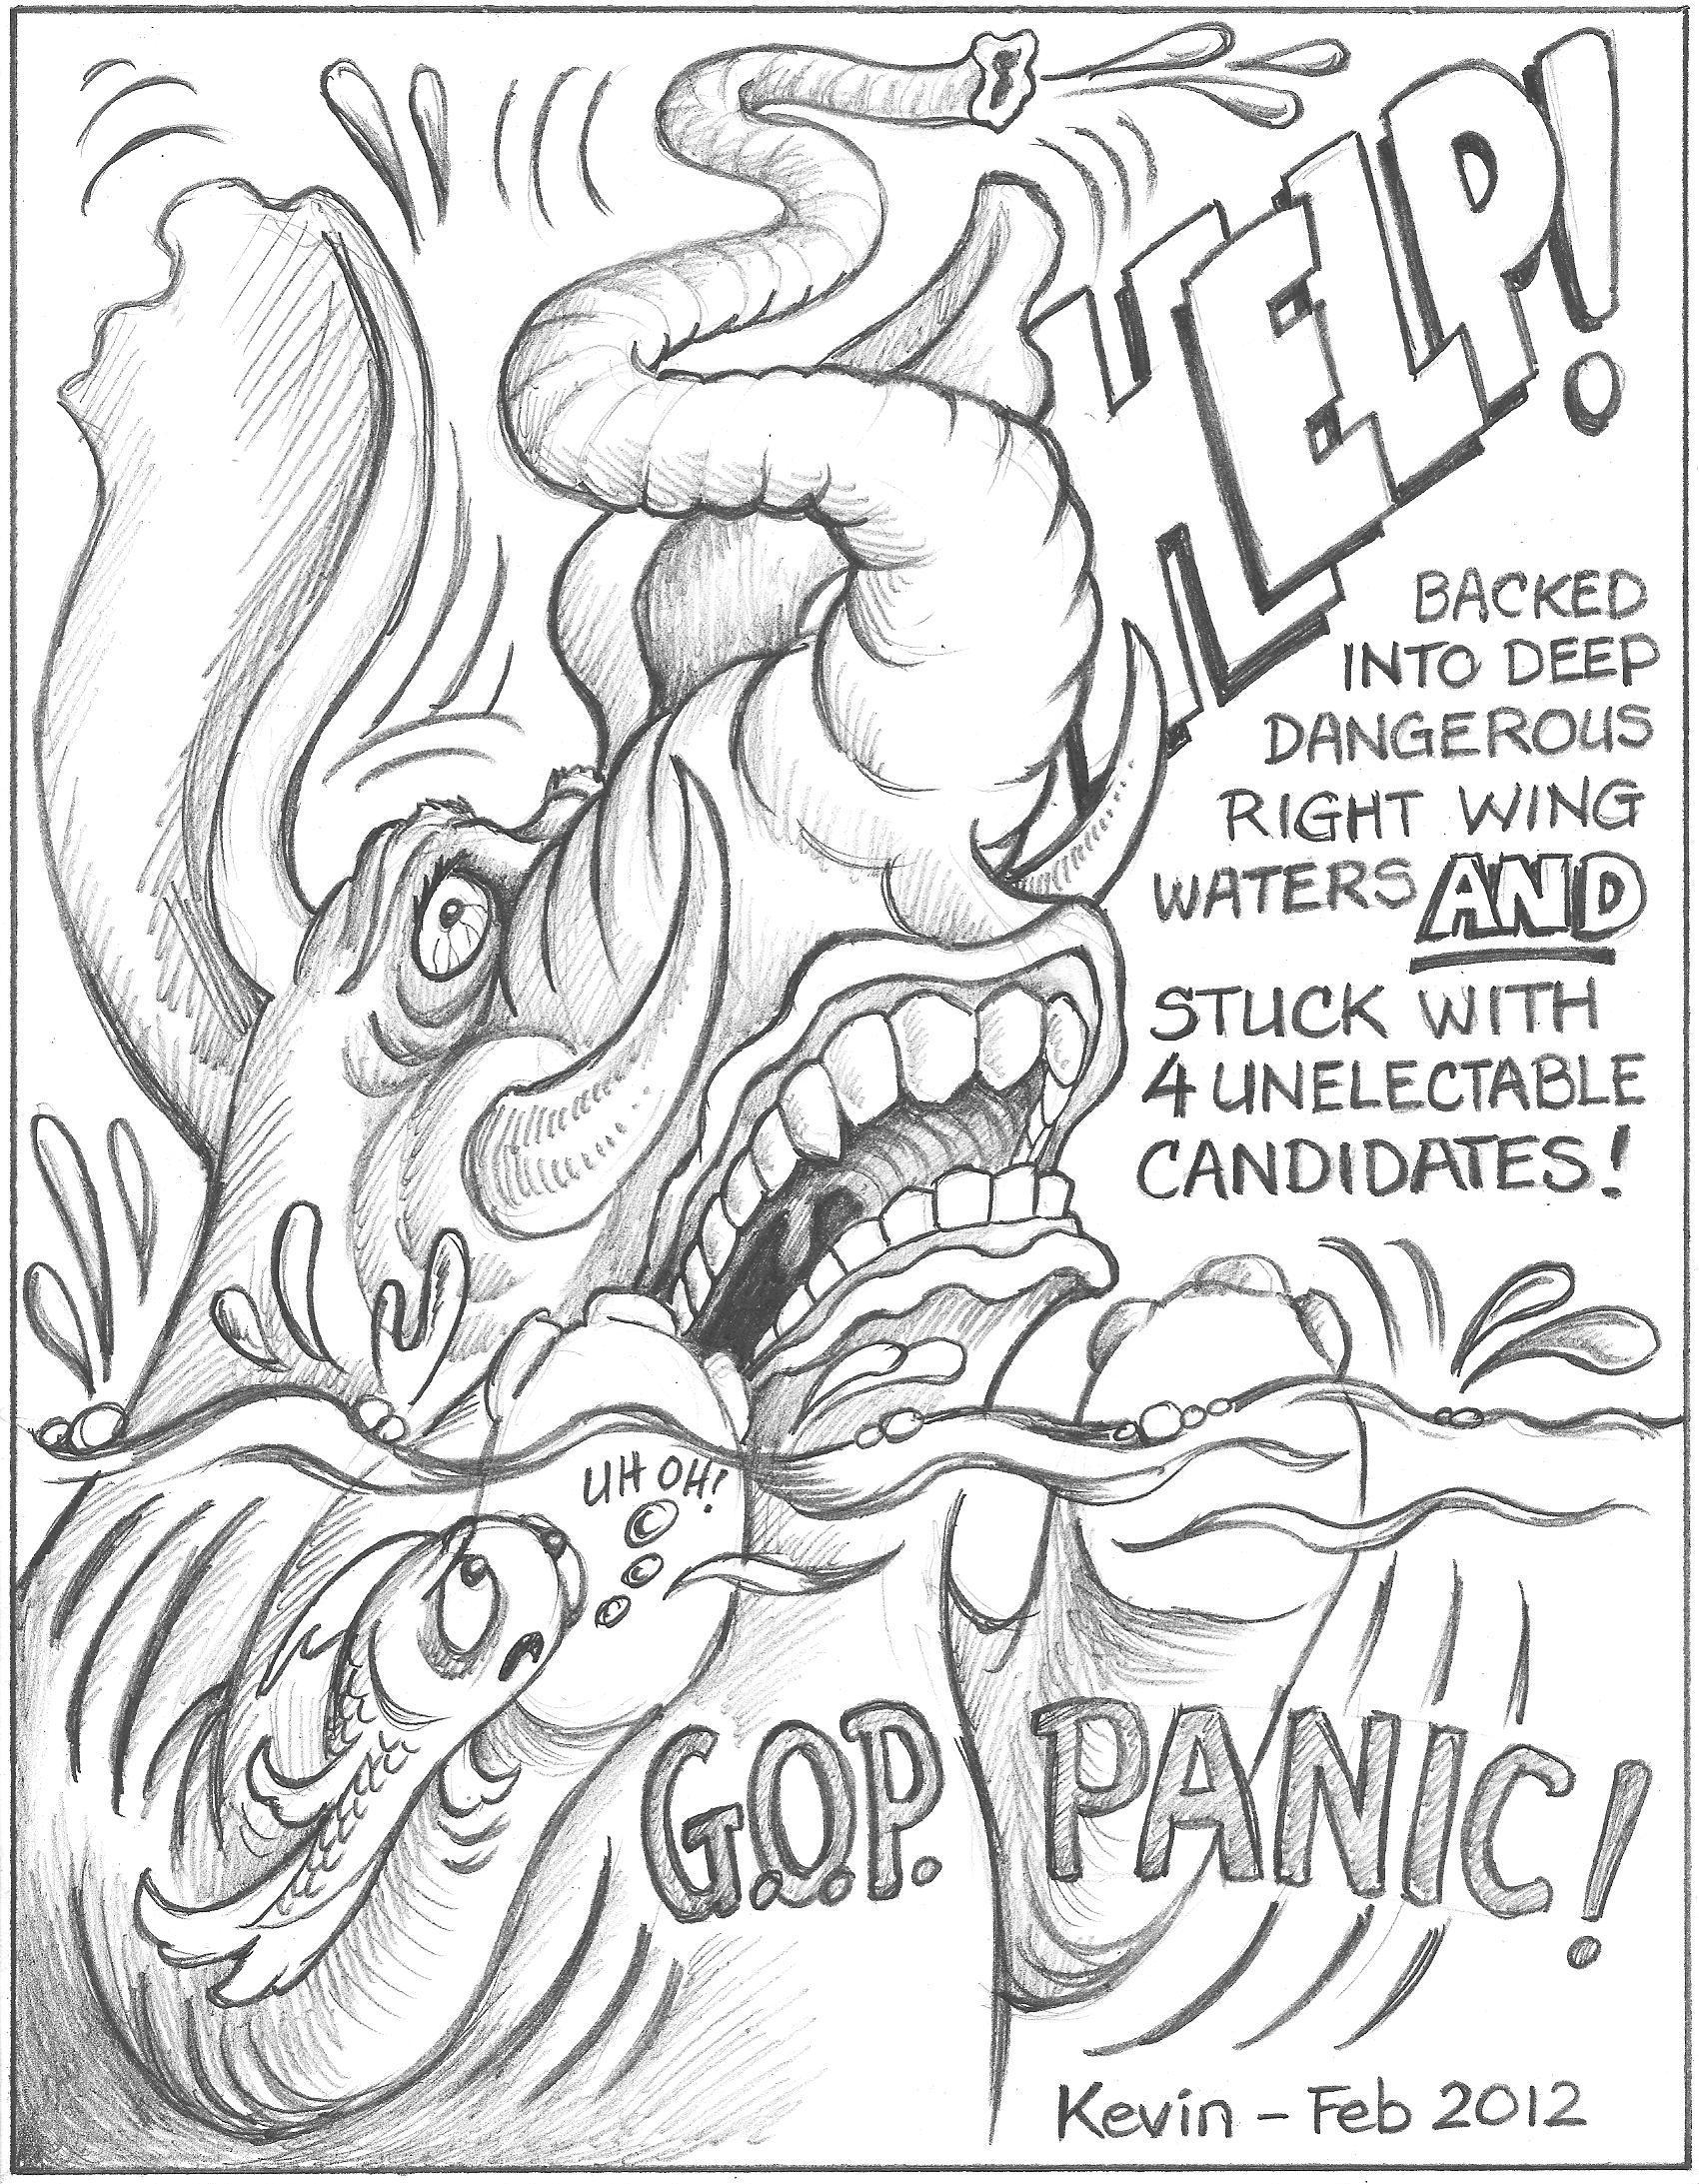 ol gop panic cartoon feb jpg cb essay term paper risk management